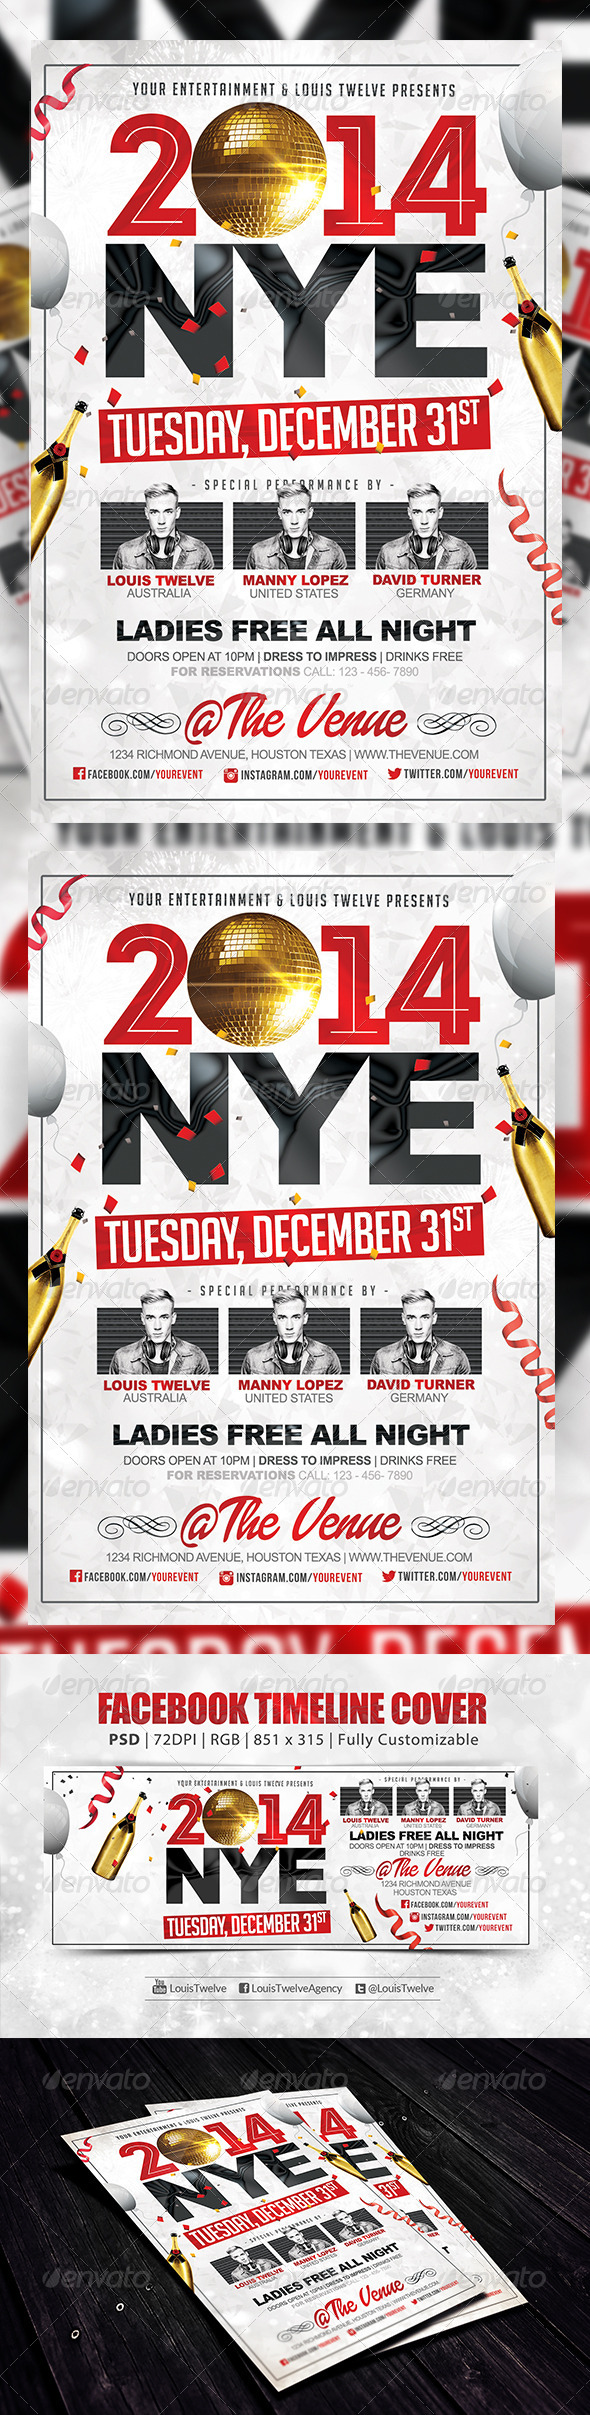 GraphicRiver NYE Party 2 Flyer & FB Cover 6160748